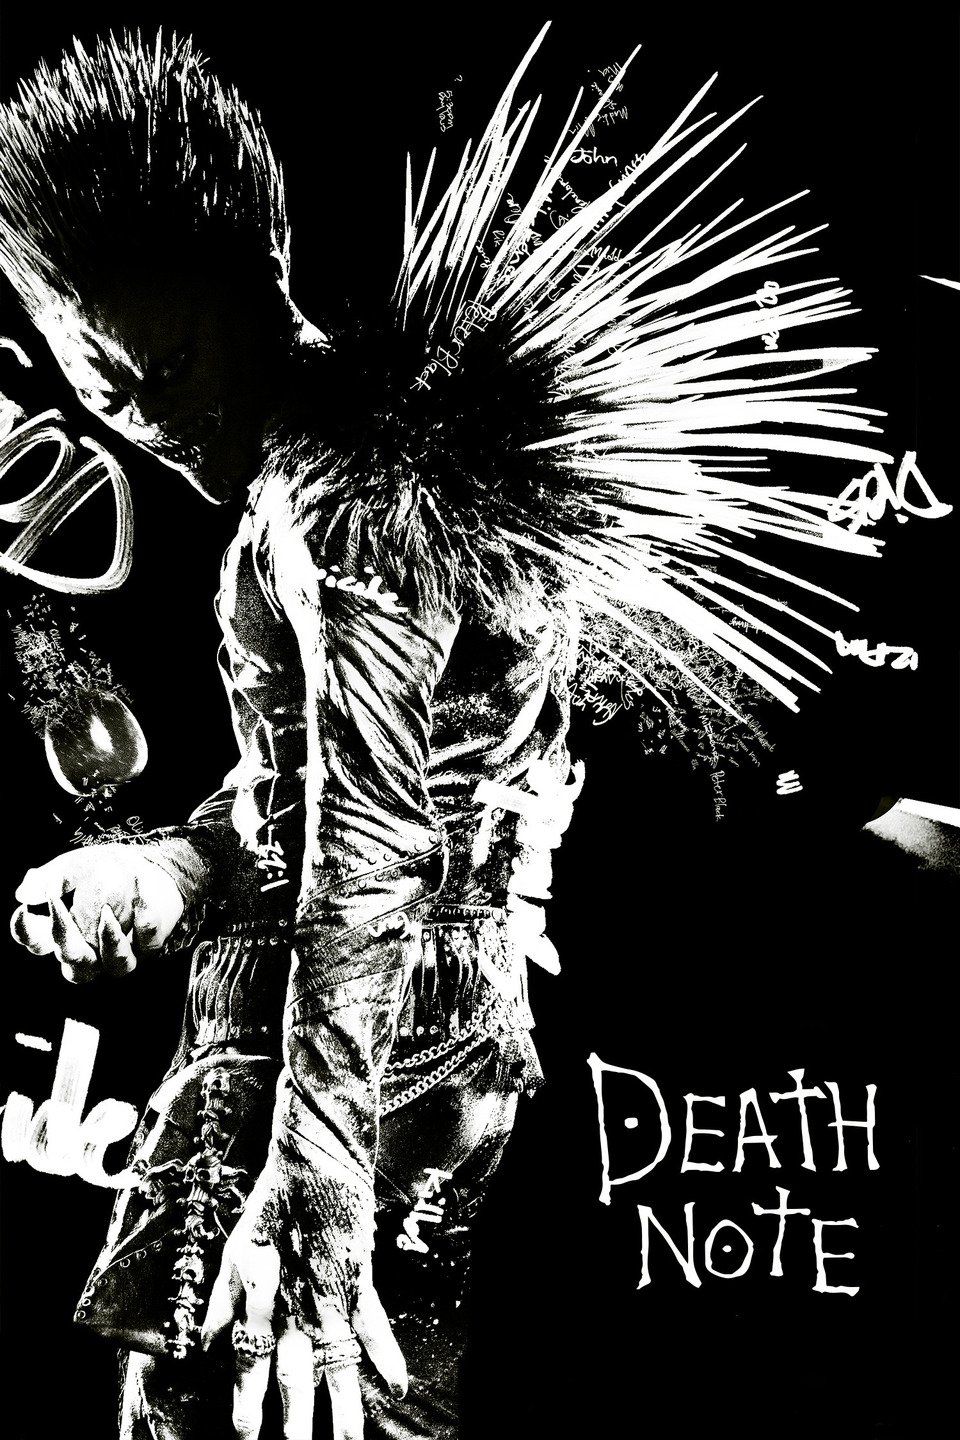 Death Note-Death Note